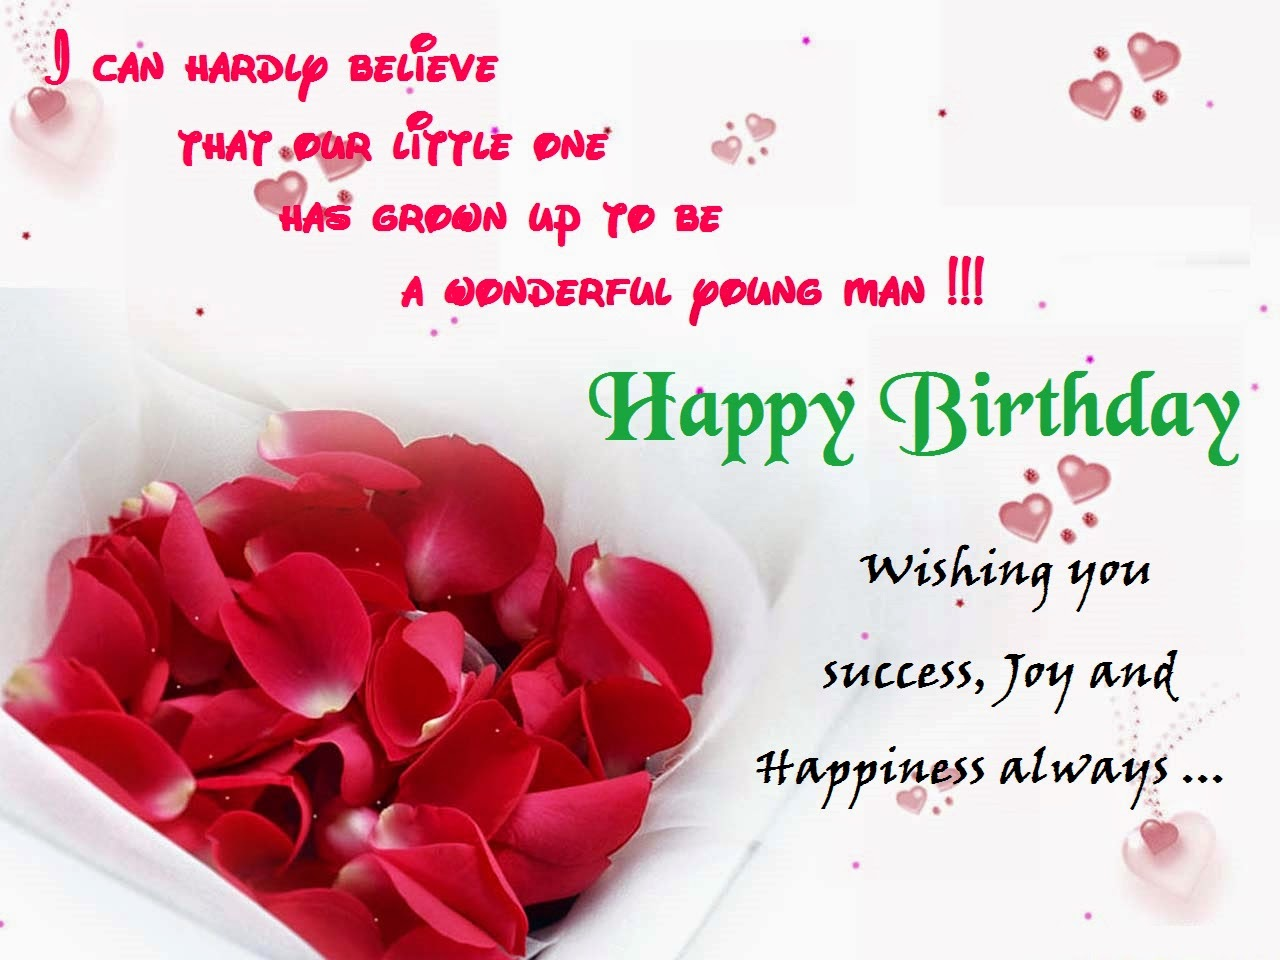 Happy Birthday Card Images for best friends